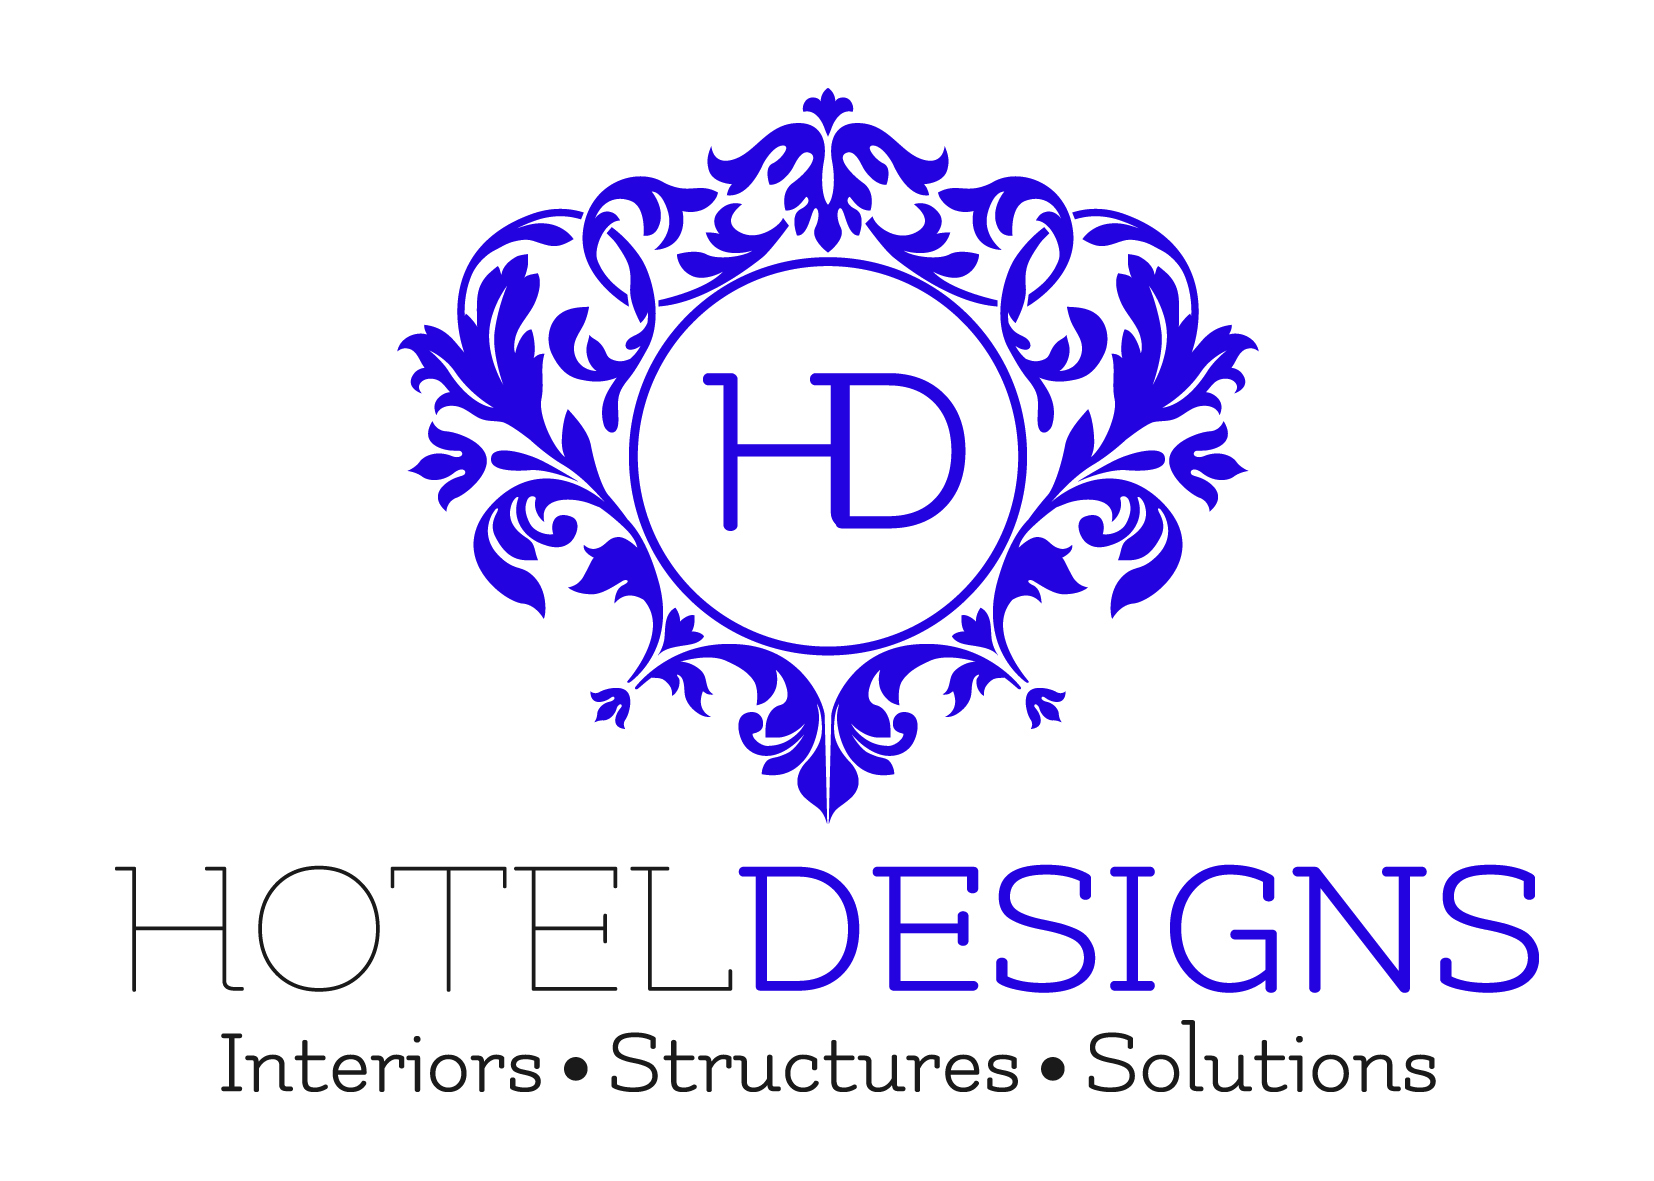 Hotel Designs new logo